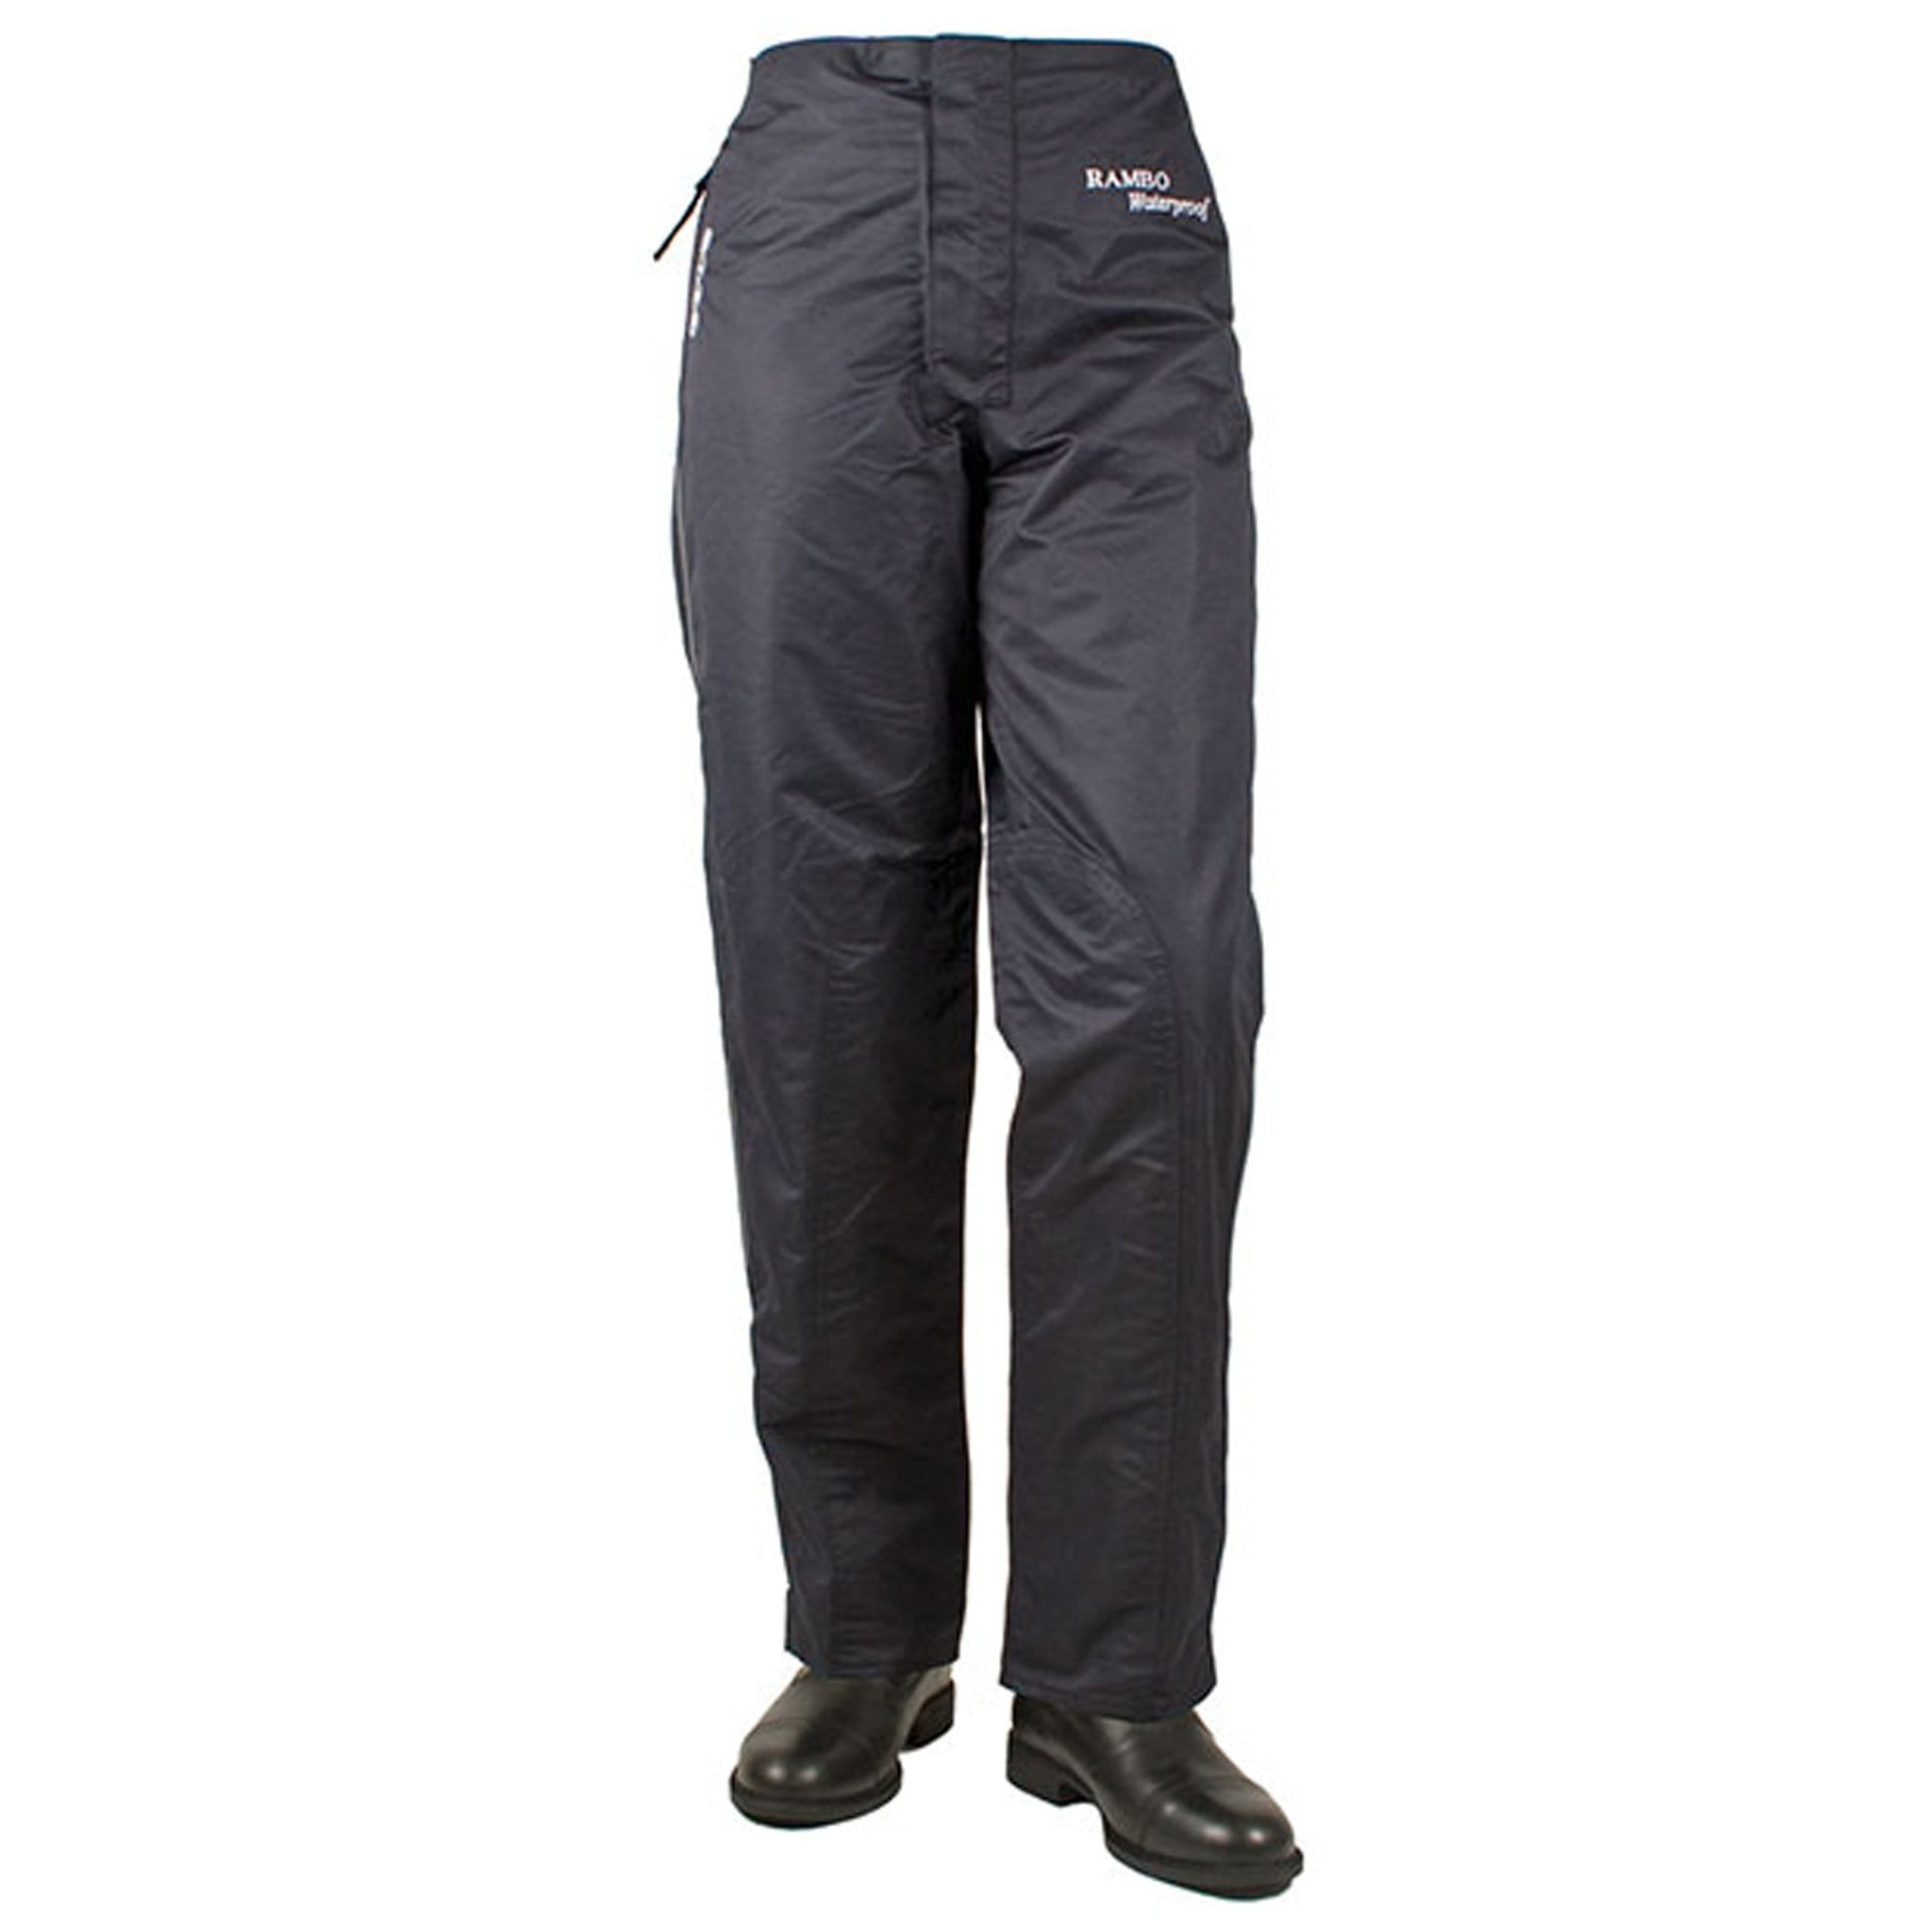 Horseware Rambo Lightweight Waterproof Pull Up Trousers Black Front CLAP00.